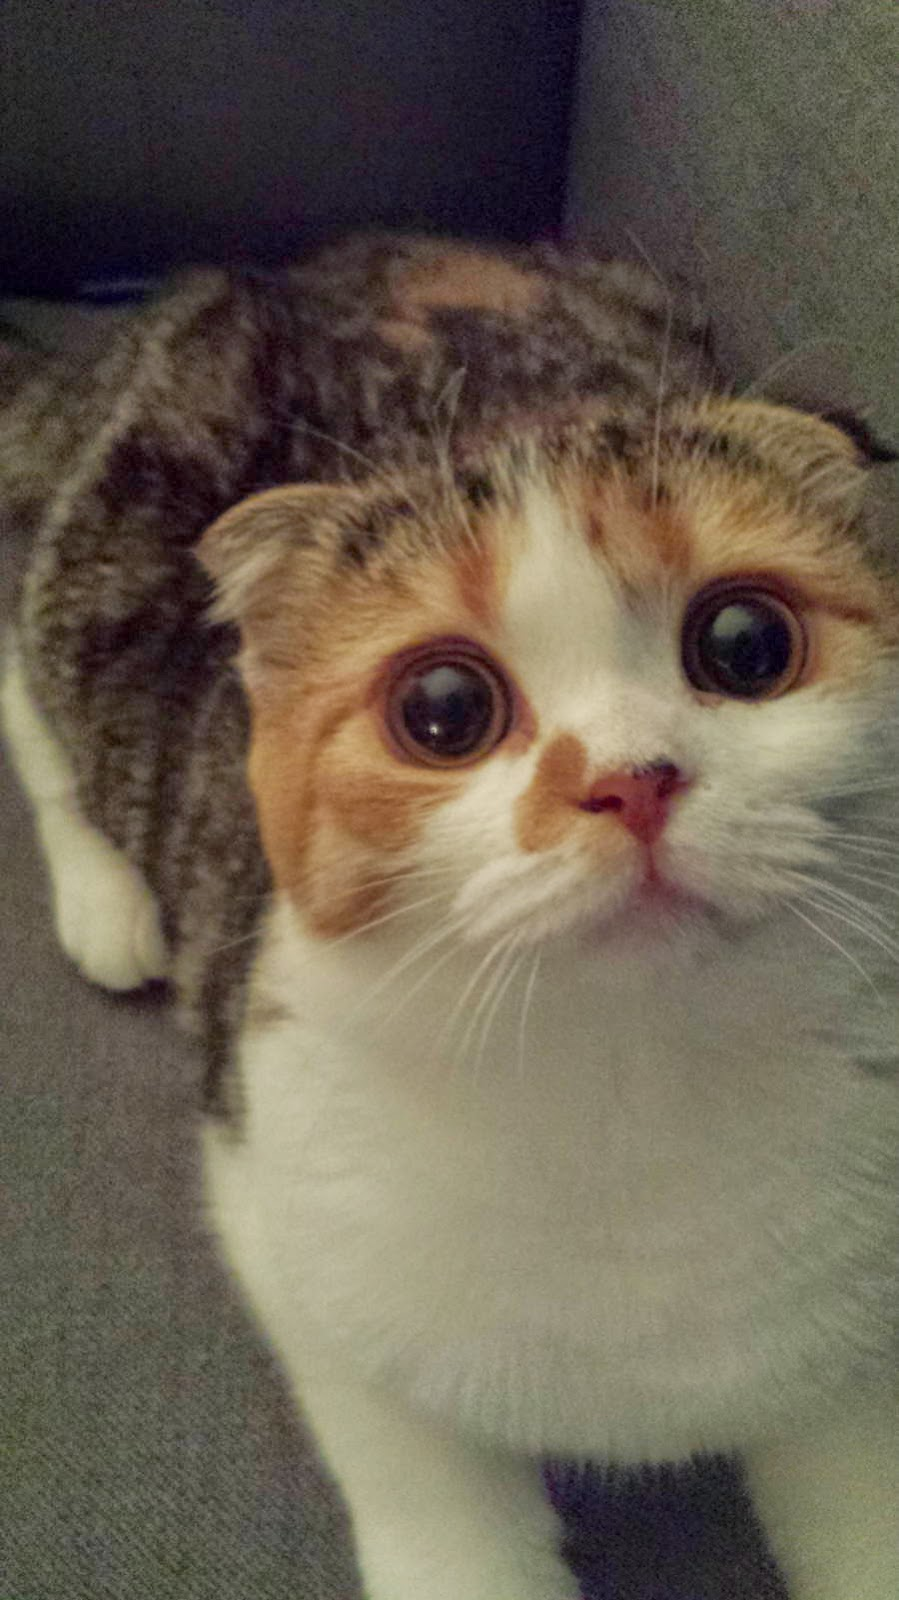 Funny cats - part 99 (40 pics + 10 gifs), cat pictures, cute cat with big eyes